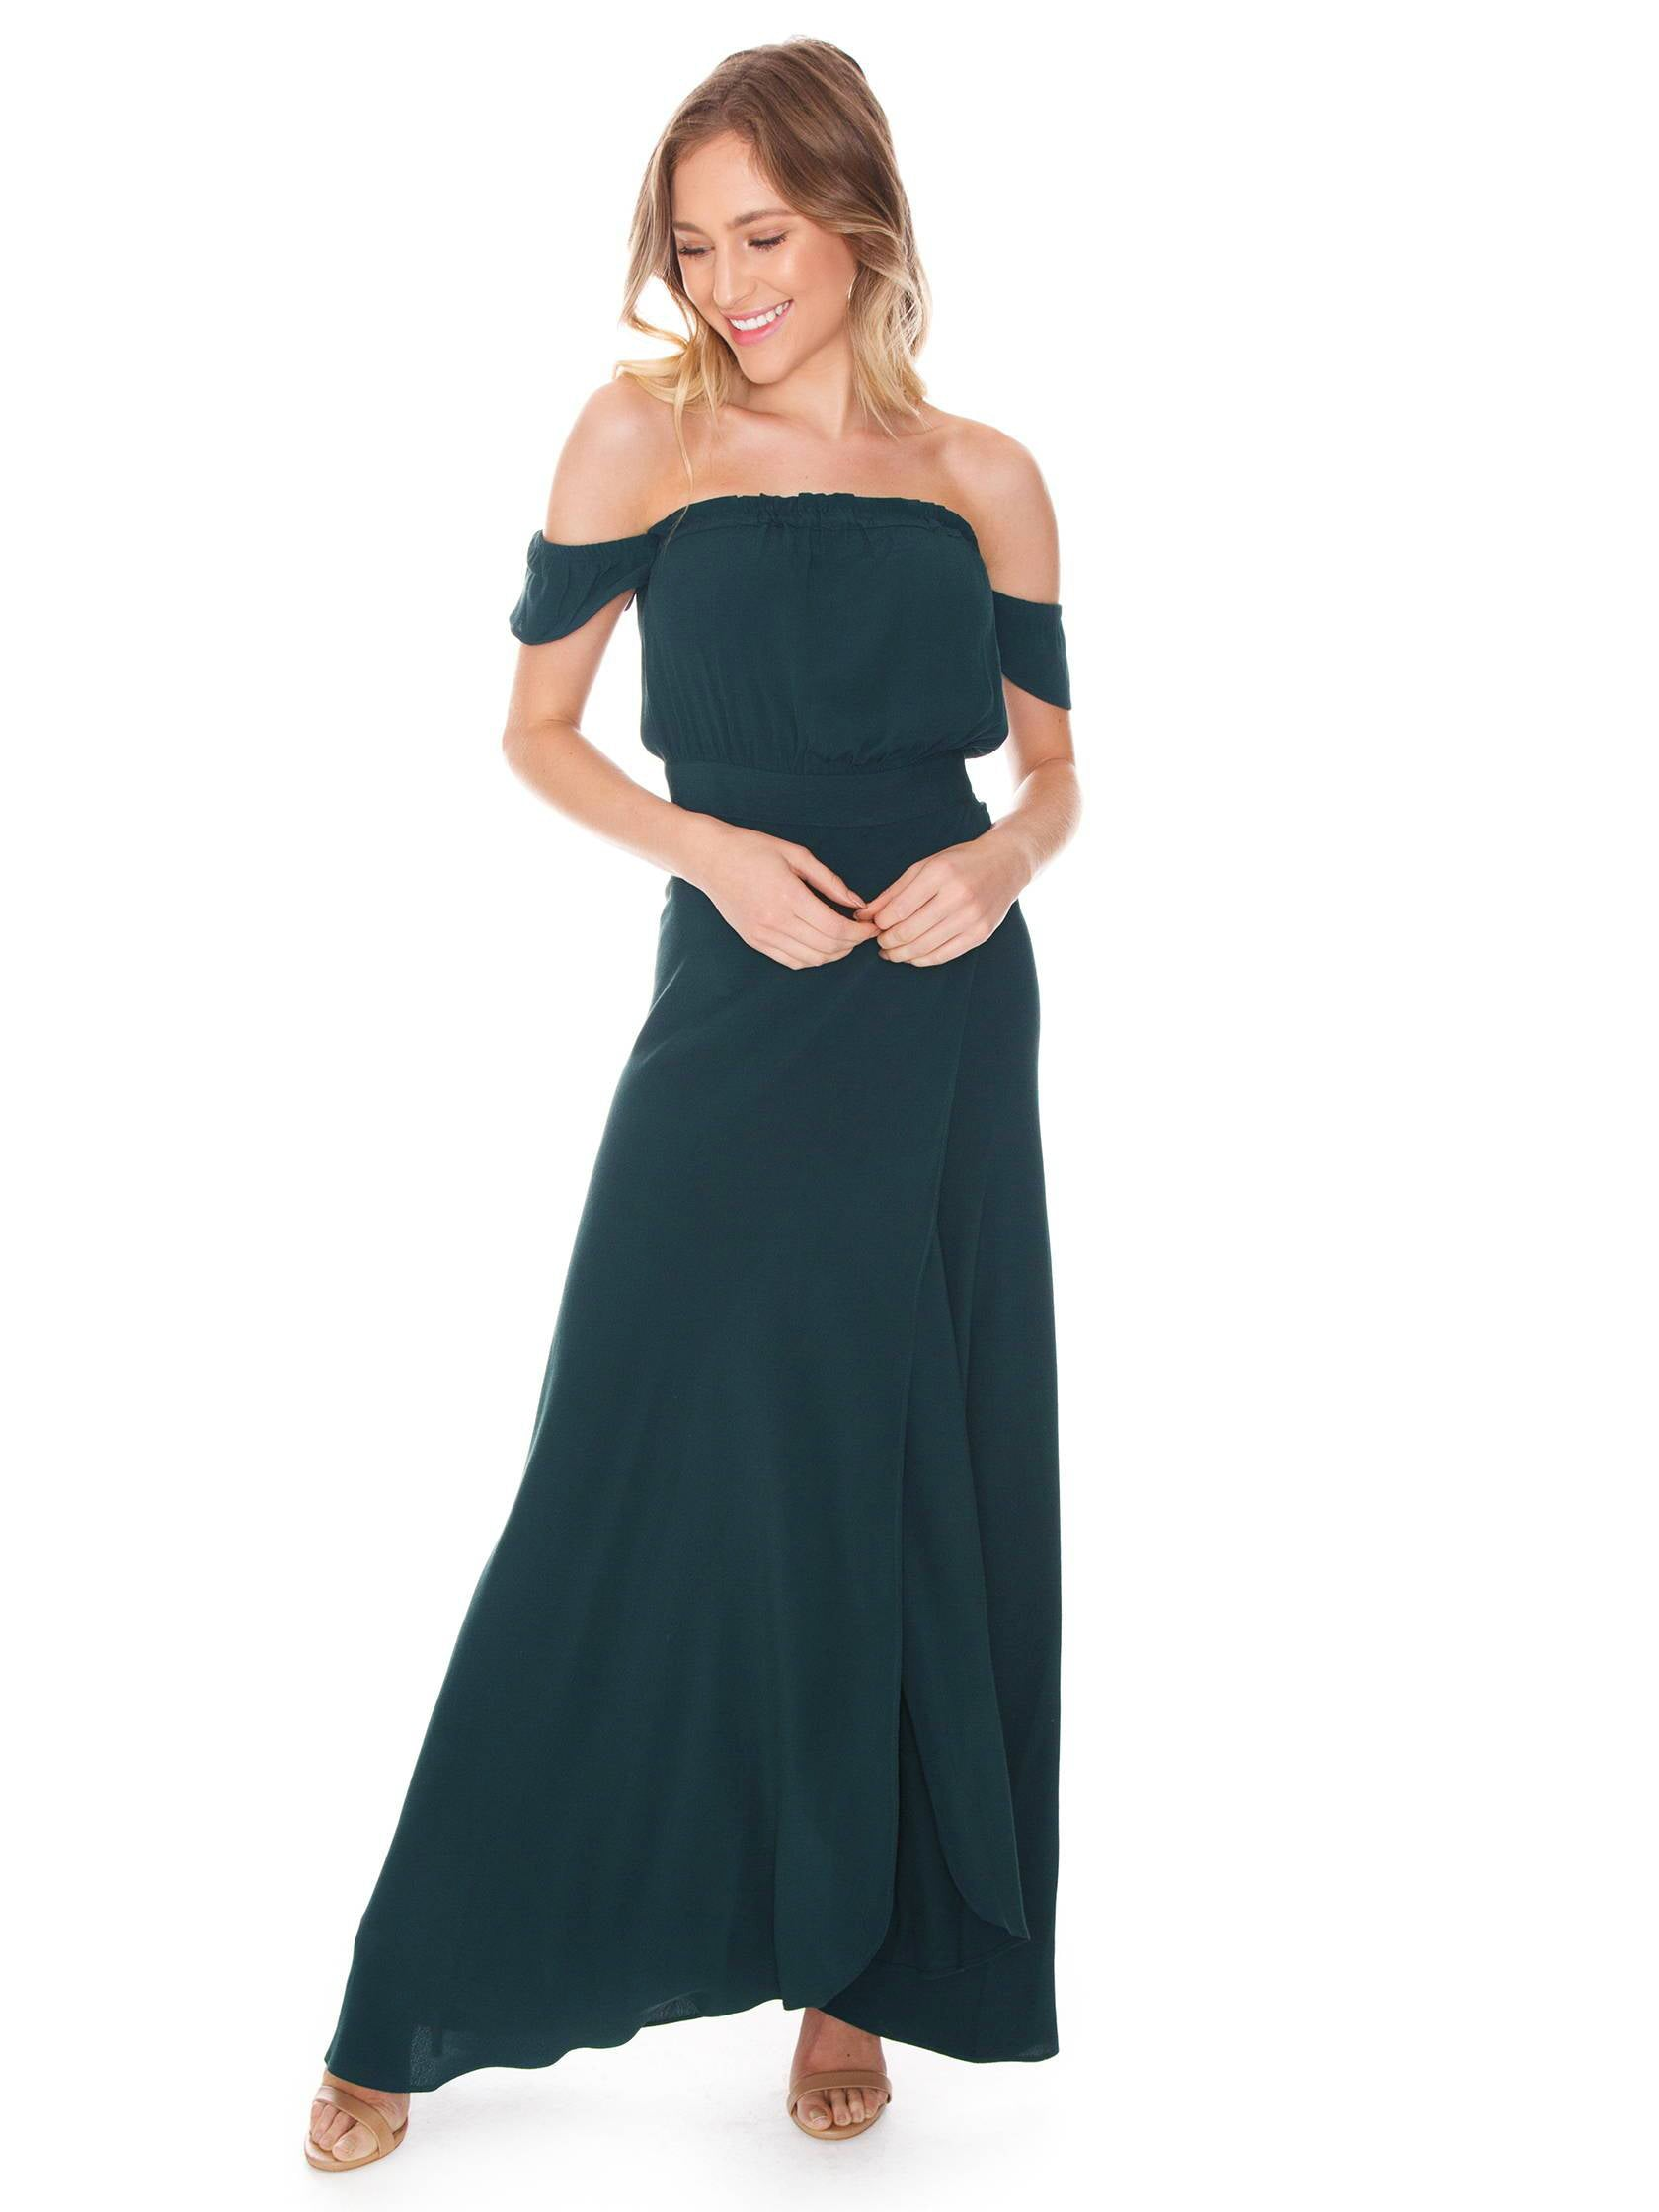 Women outfit in a dress rental from Flynn Skye called Bella Maxi